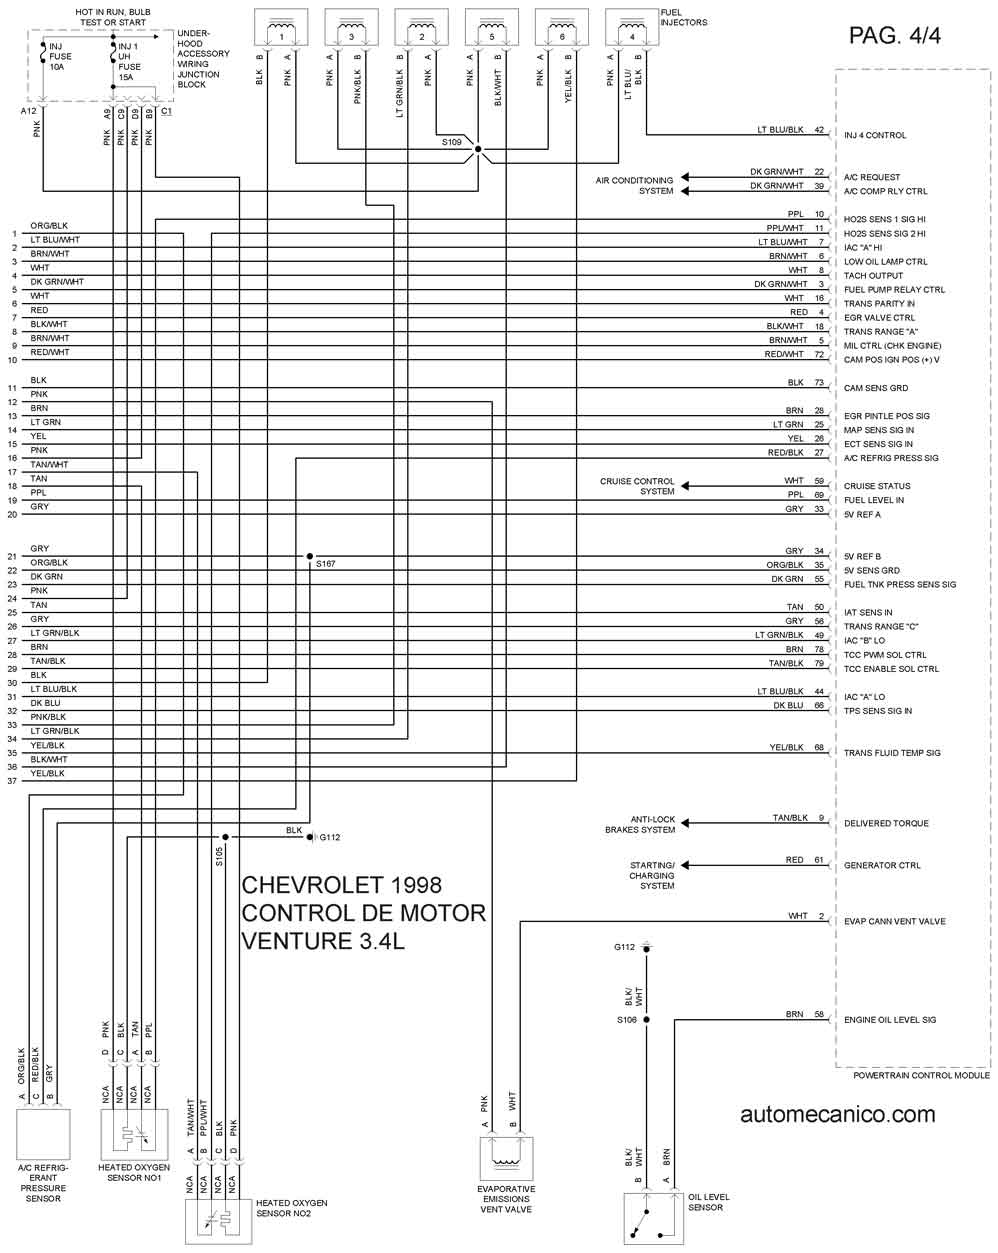 98 Ford Fuse Box Diagram Wiring Will Be A Thing 1998 F 150 Exterior Diagrama De Motor Hyundai 2000 Free Engine F250 F150